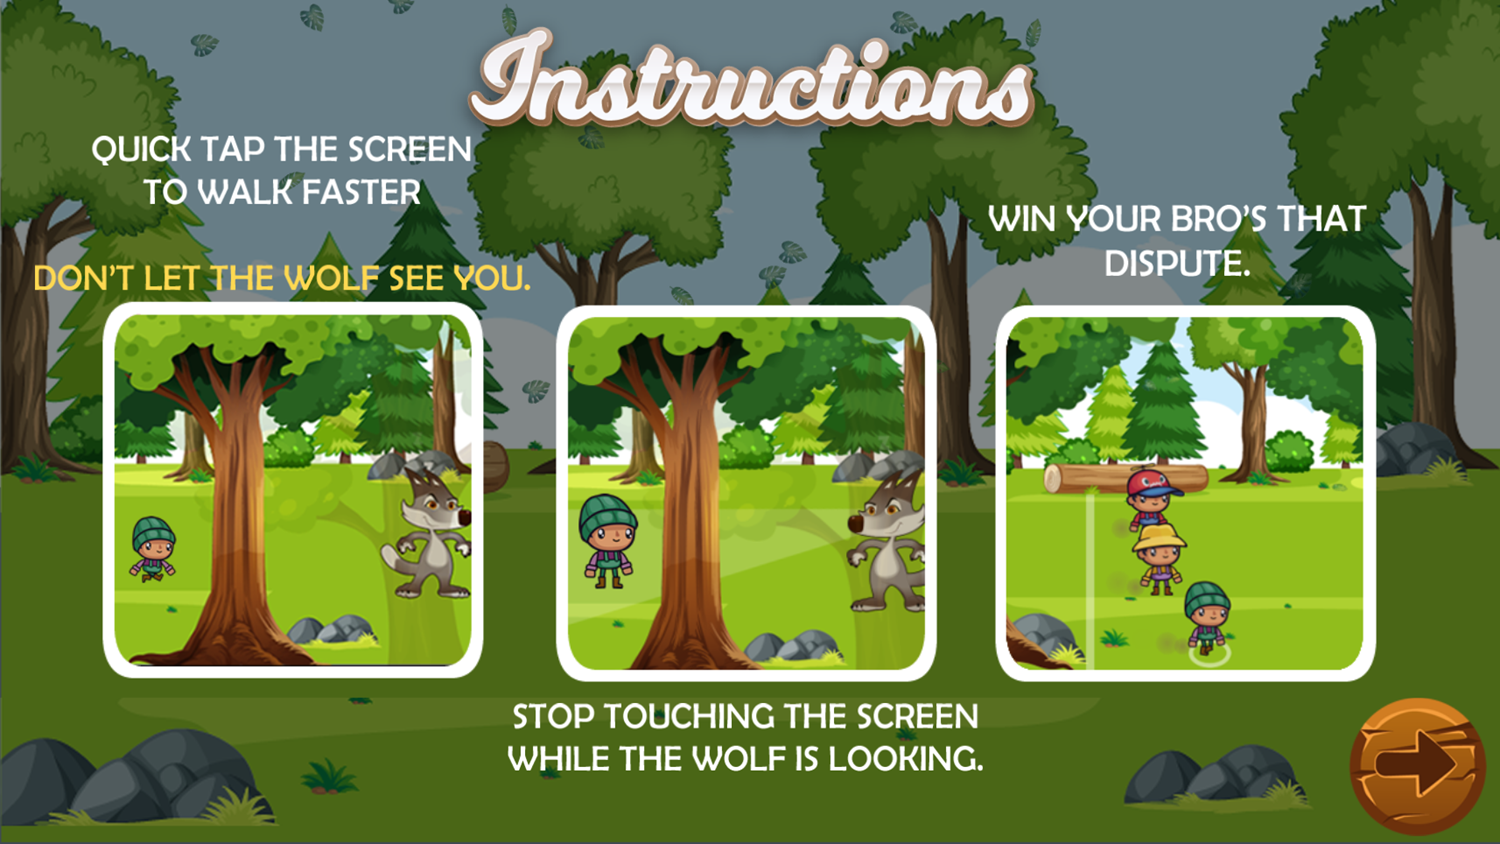 Forest Camp Adventure Game Instructions Screenshot.